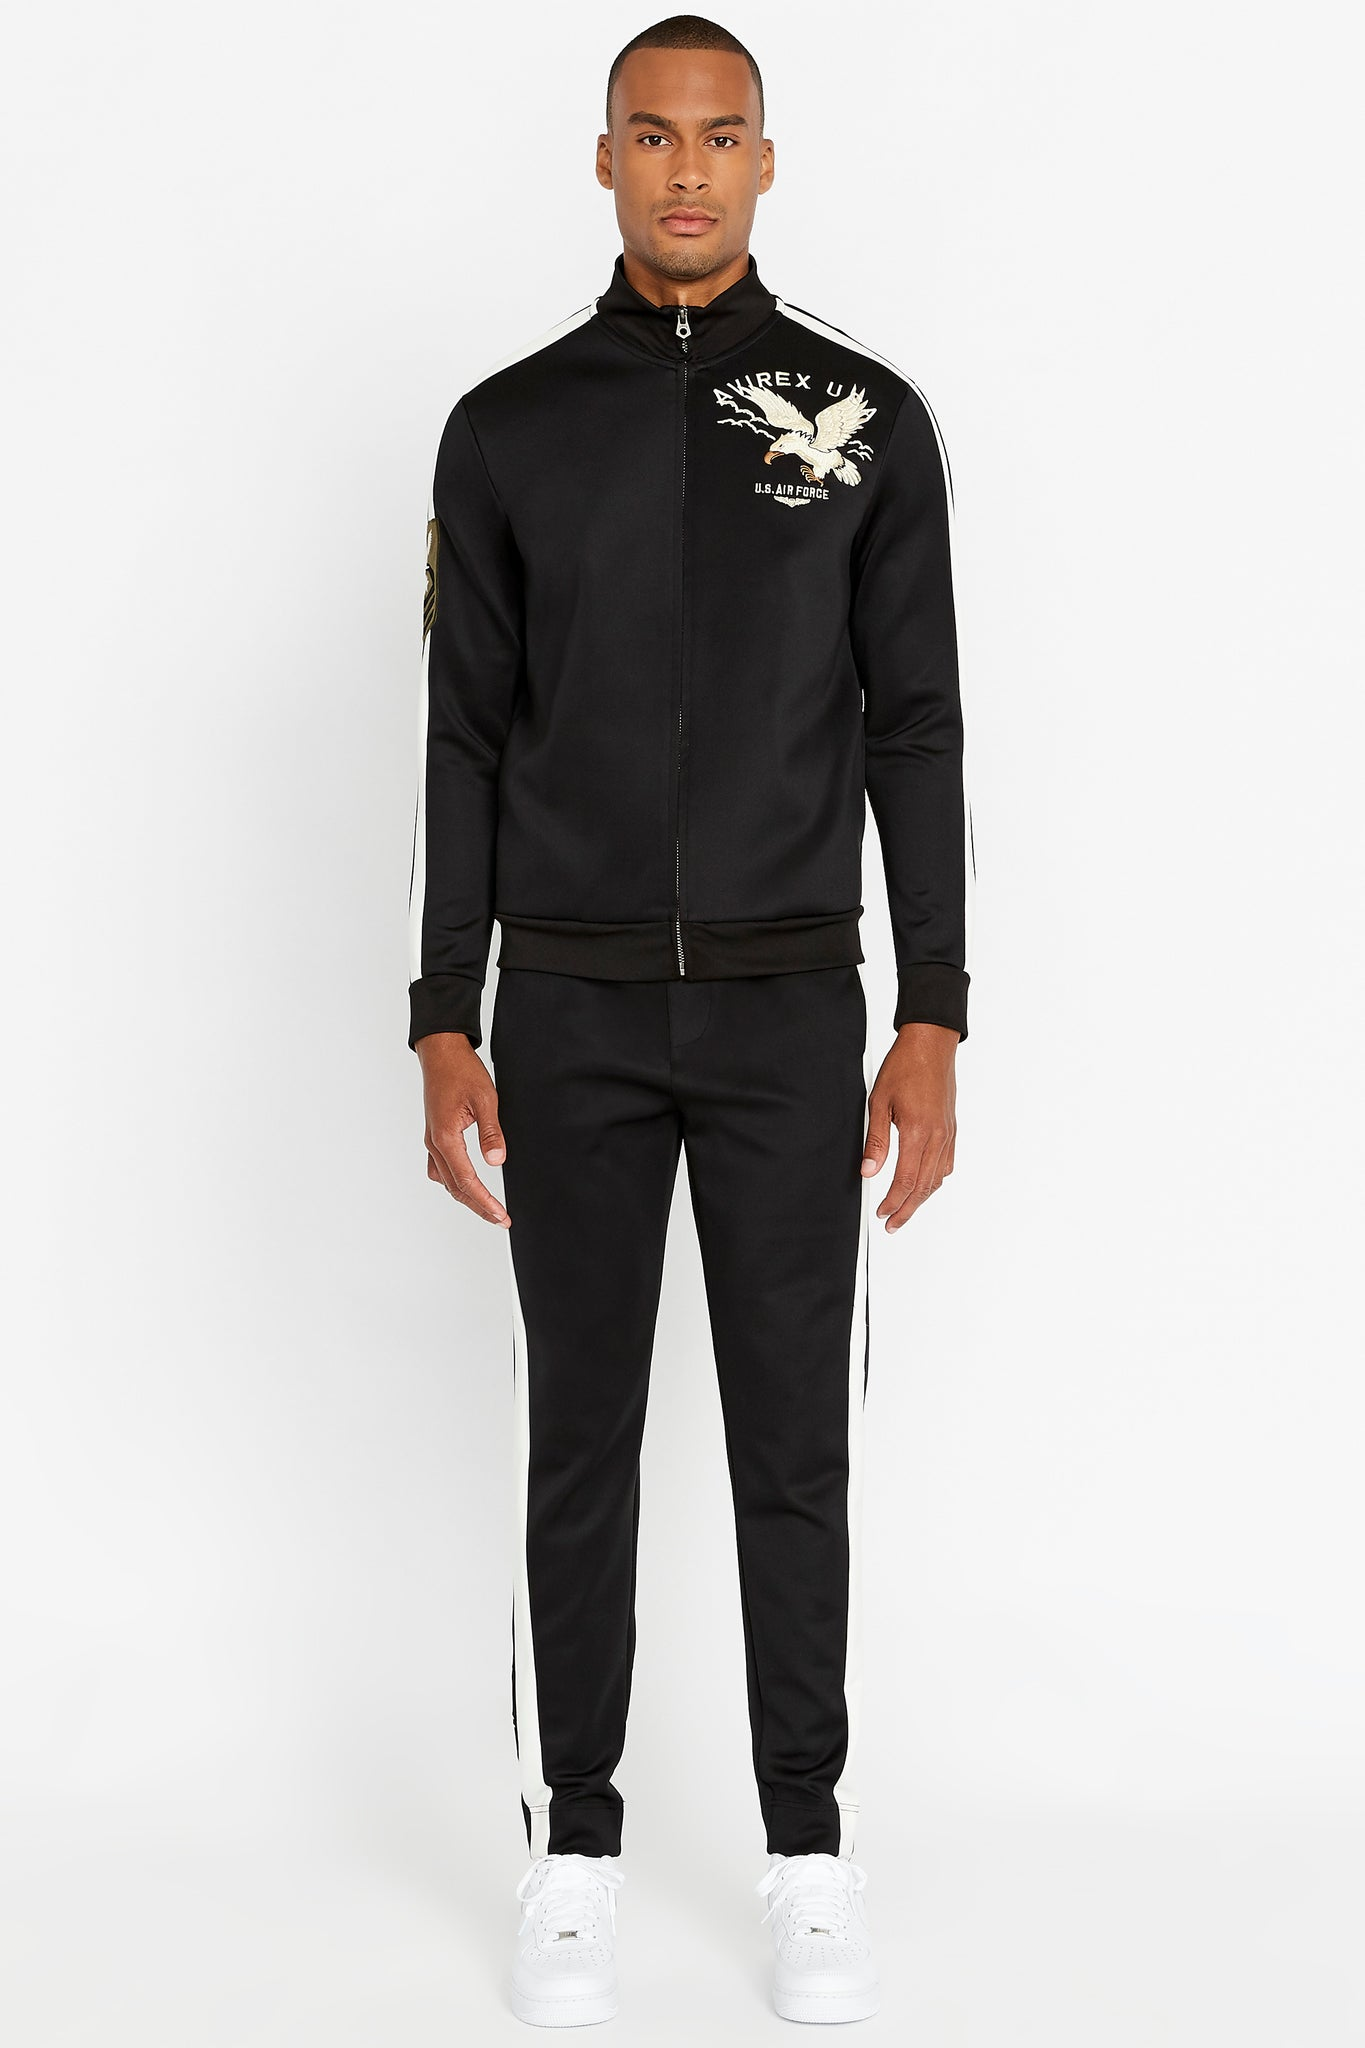 Full view of men wearing a fully zipped black jet track jacket with eagle embroidery on the chest and black pants